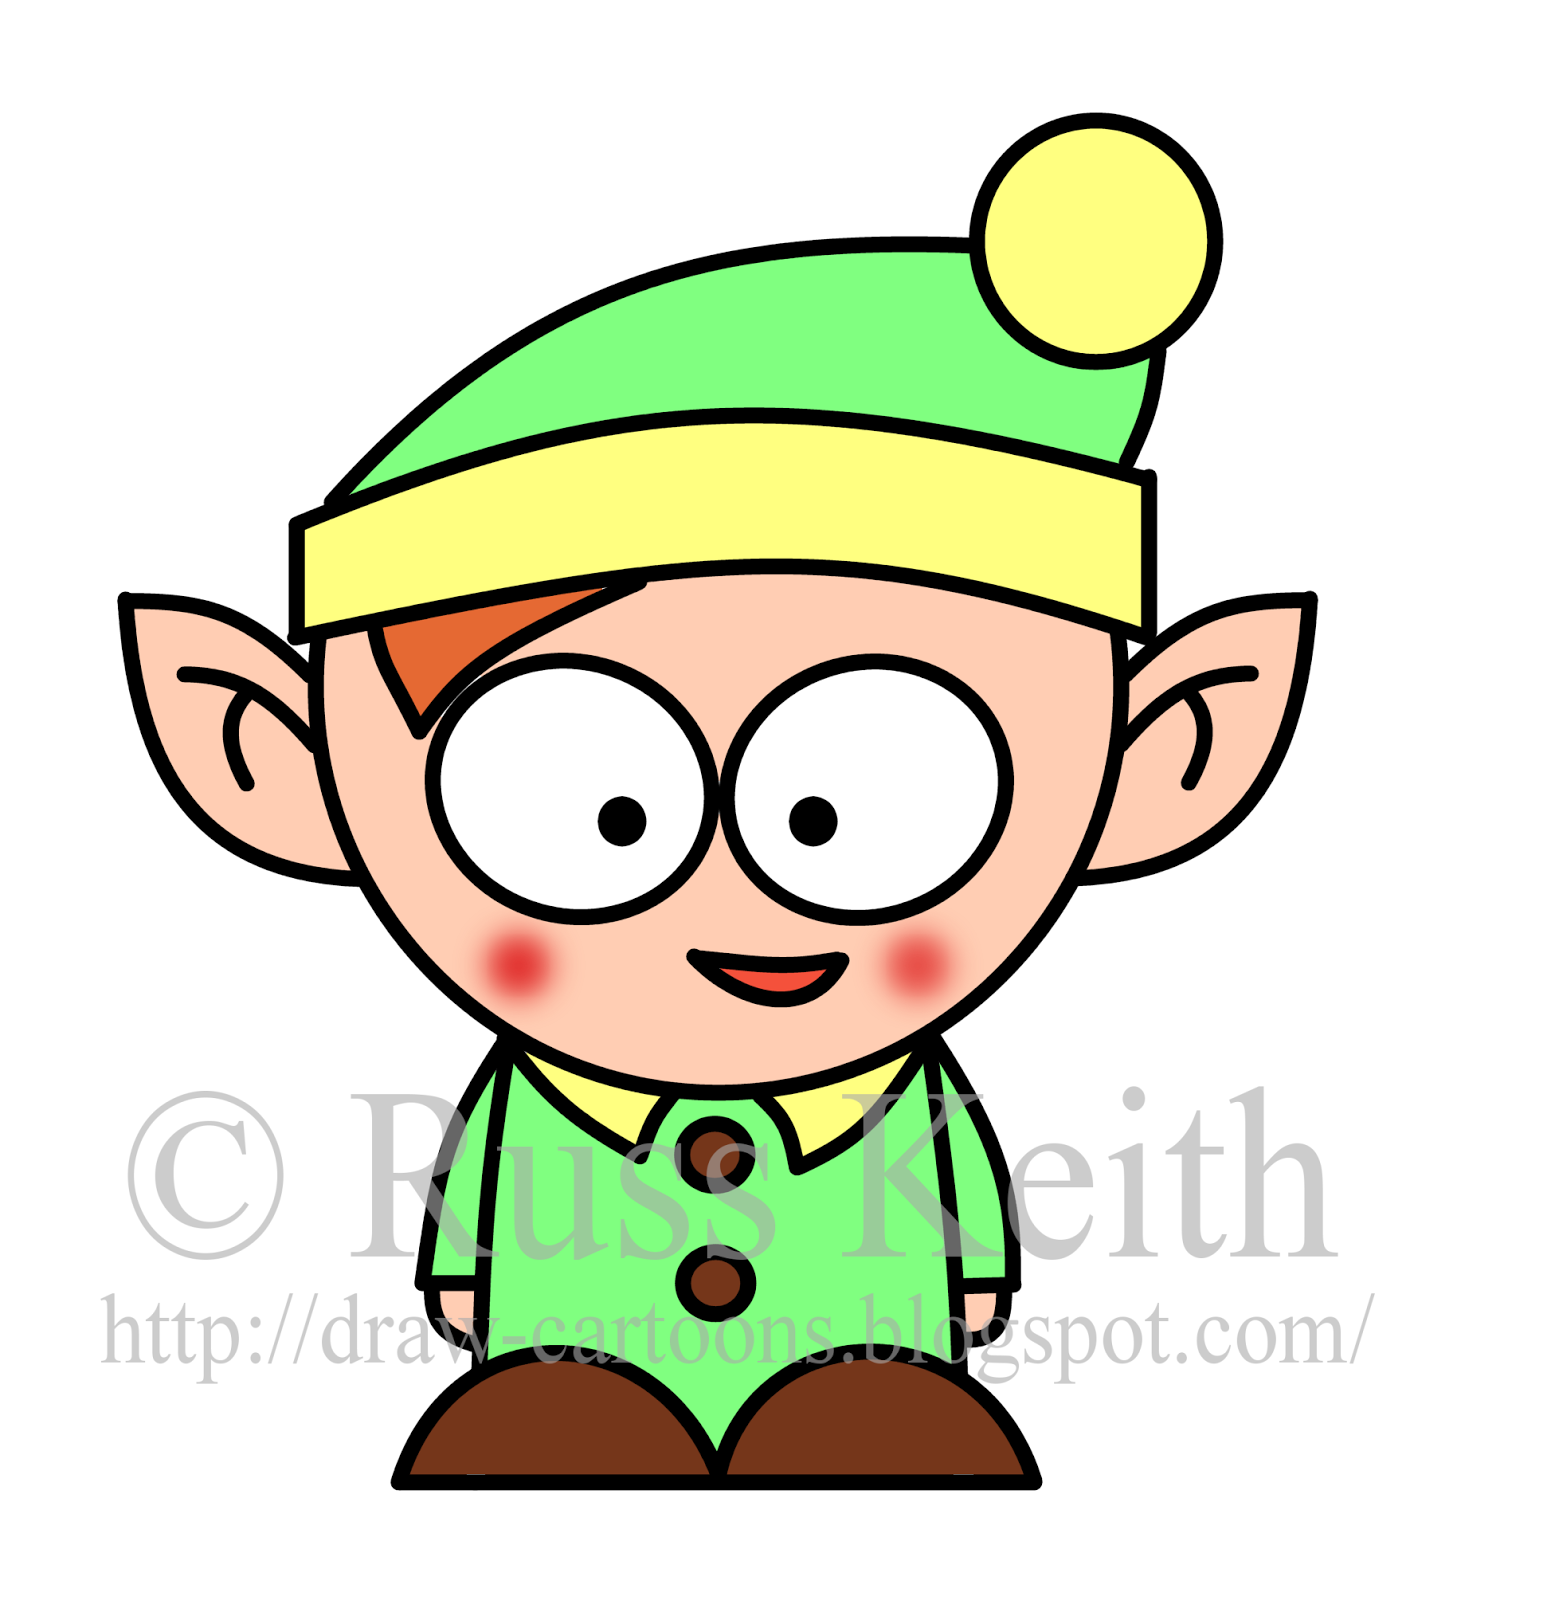 christmas elf - How To Draw A Christmas Elf